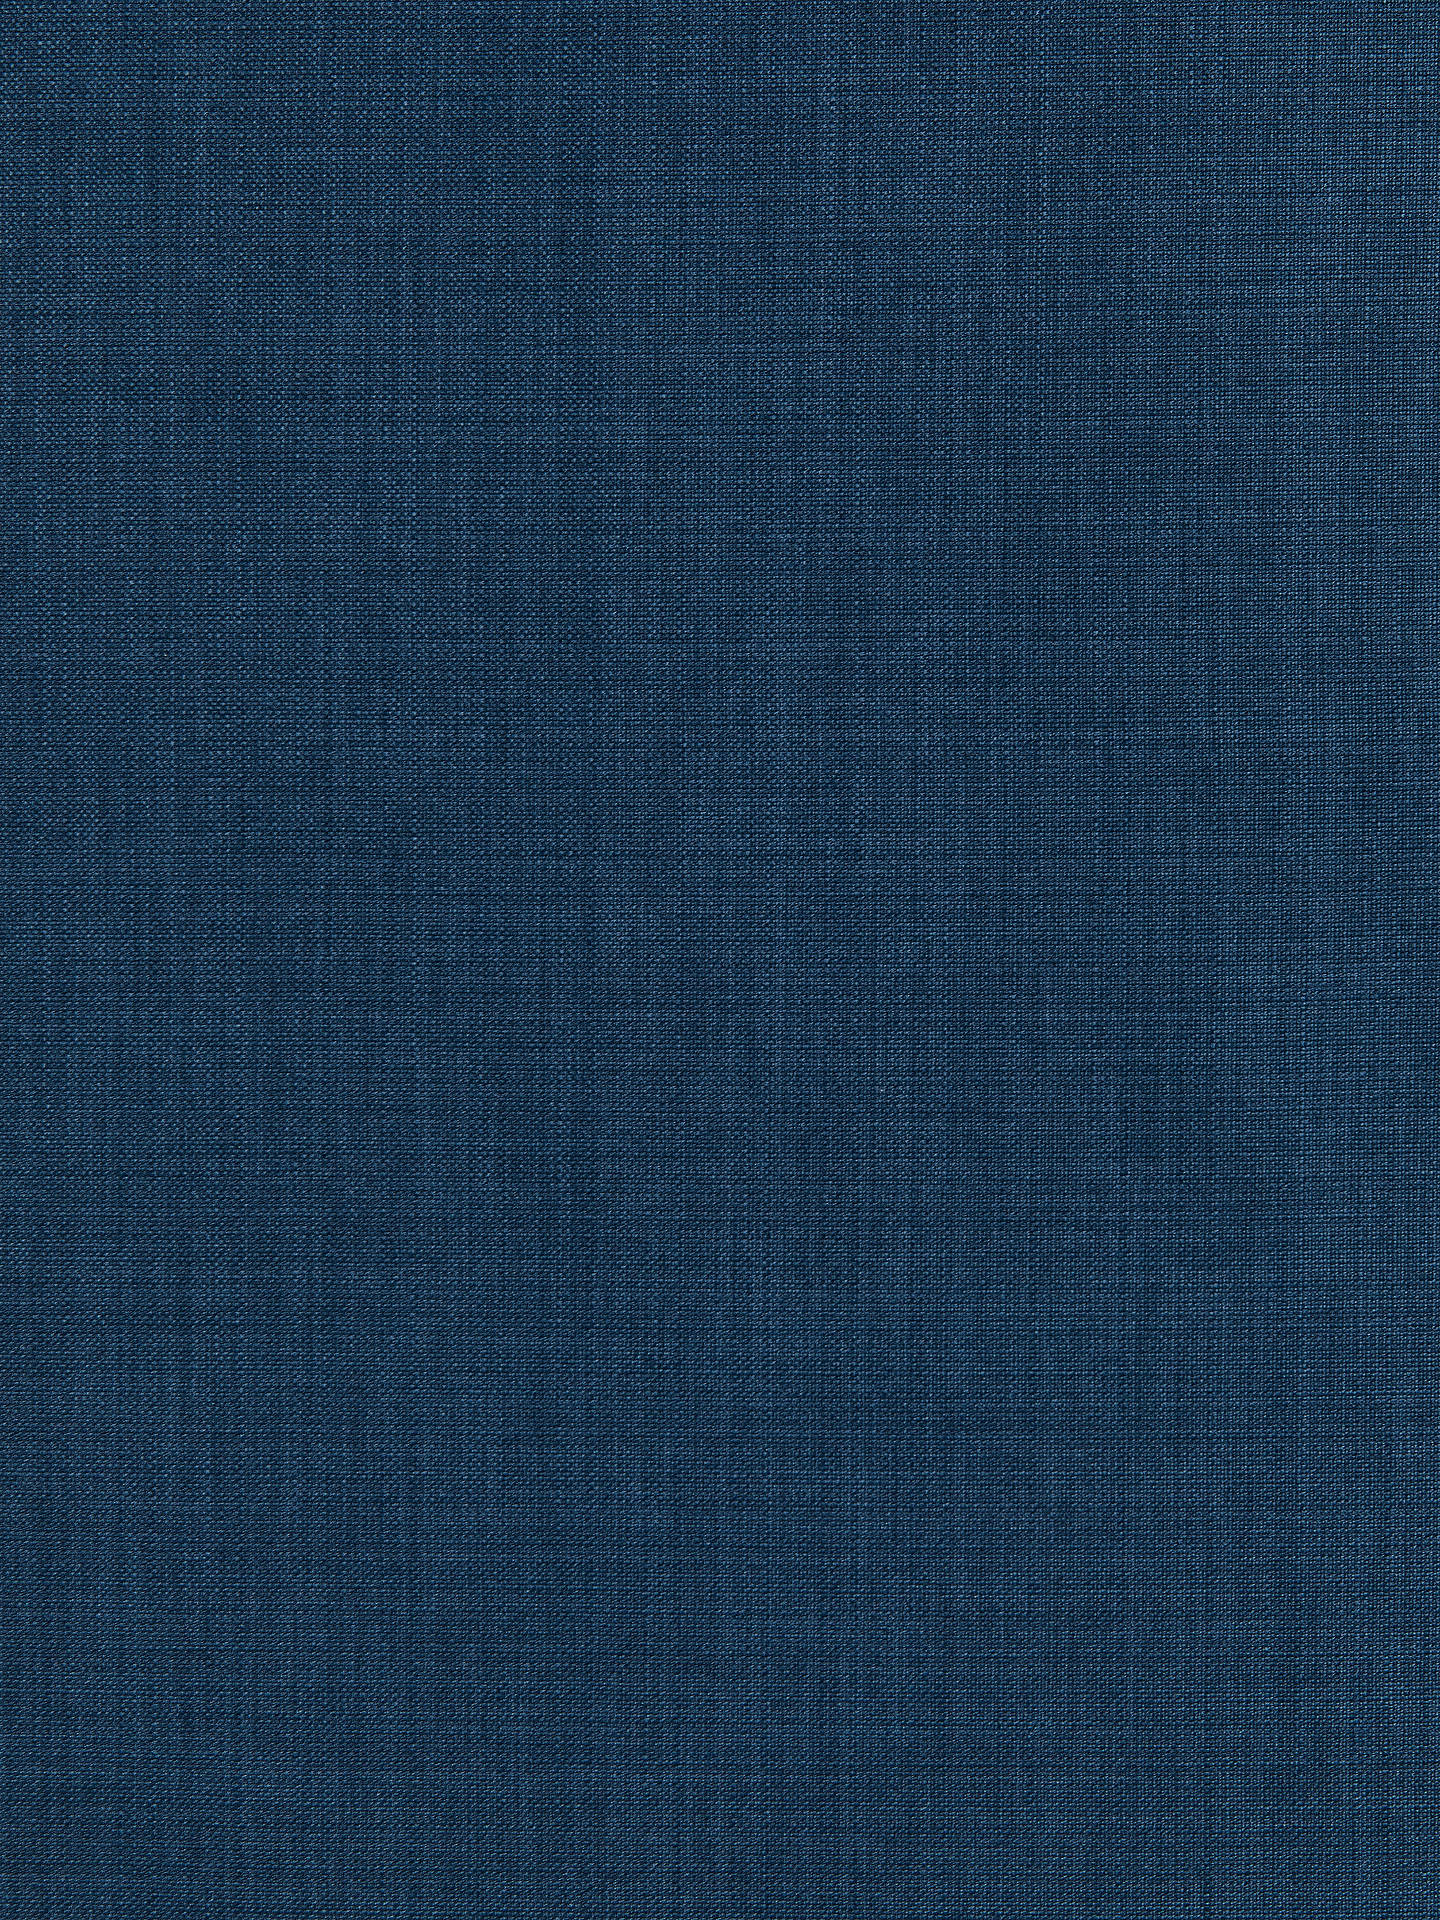 Buy John Lewis & Partners Barathea Pair Lined Eyelet Curtains, Navy, W117 x Drop 182cm Online at johnlewis.com